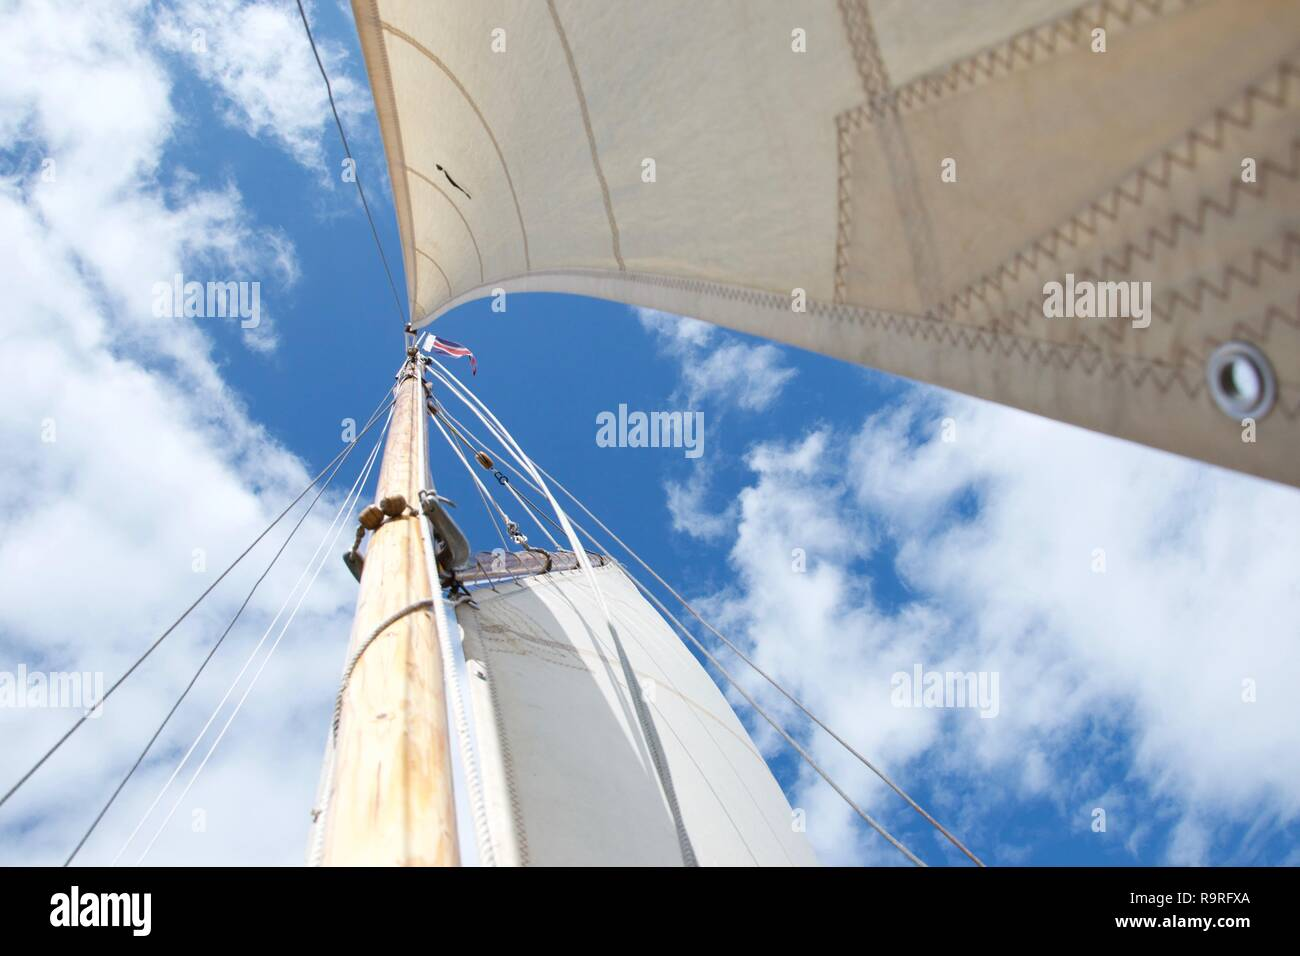 Looking up the mast on a traditional gaff rigged yacht / sailing boat, against a blue sky with little white clouds. It is windy and bright, and the fo - Stock Image